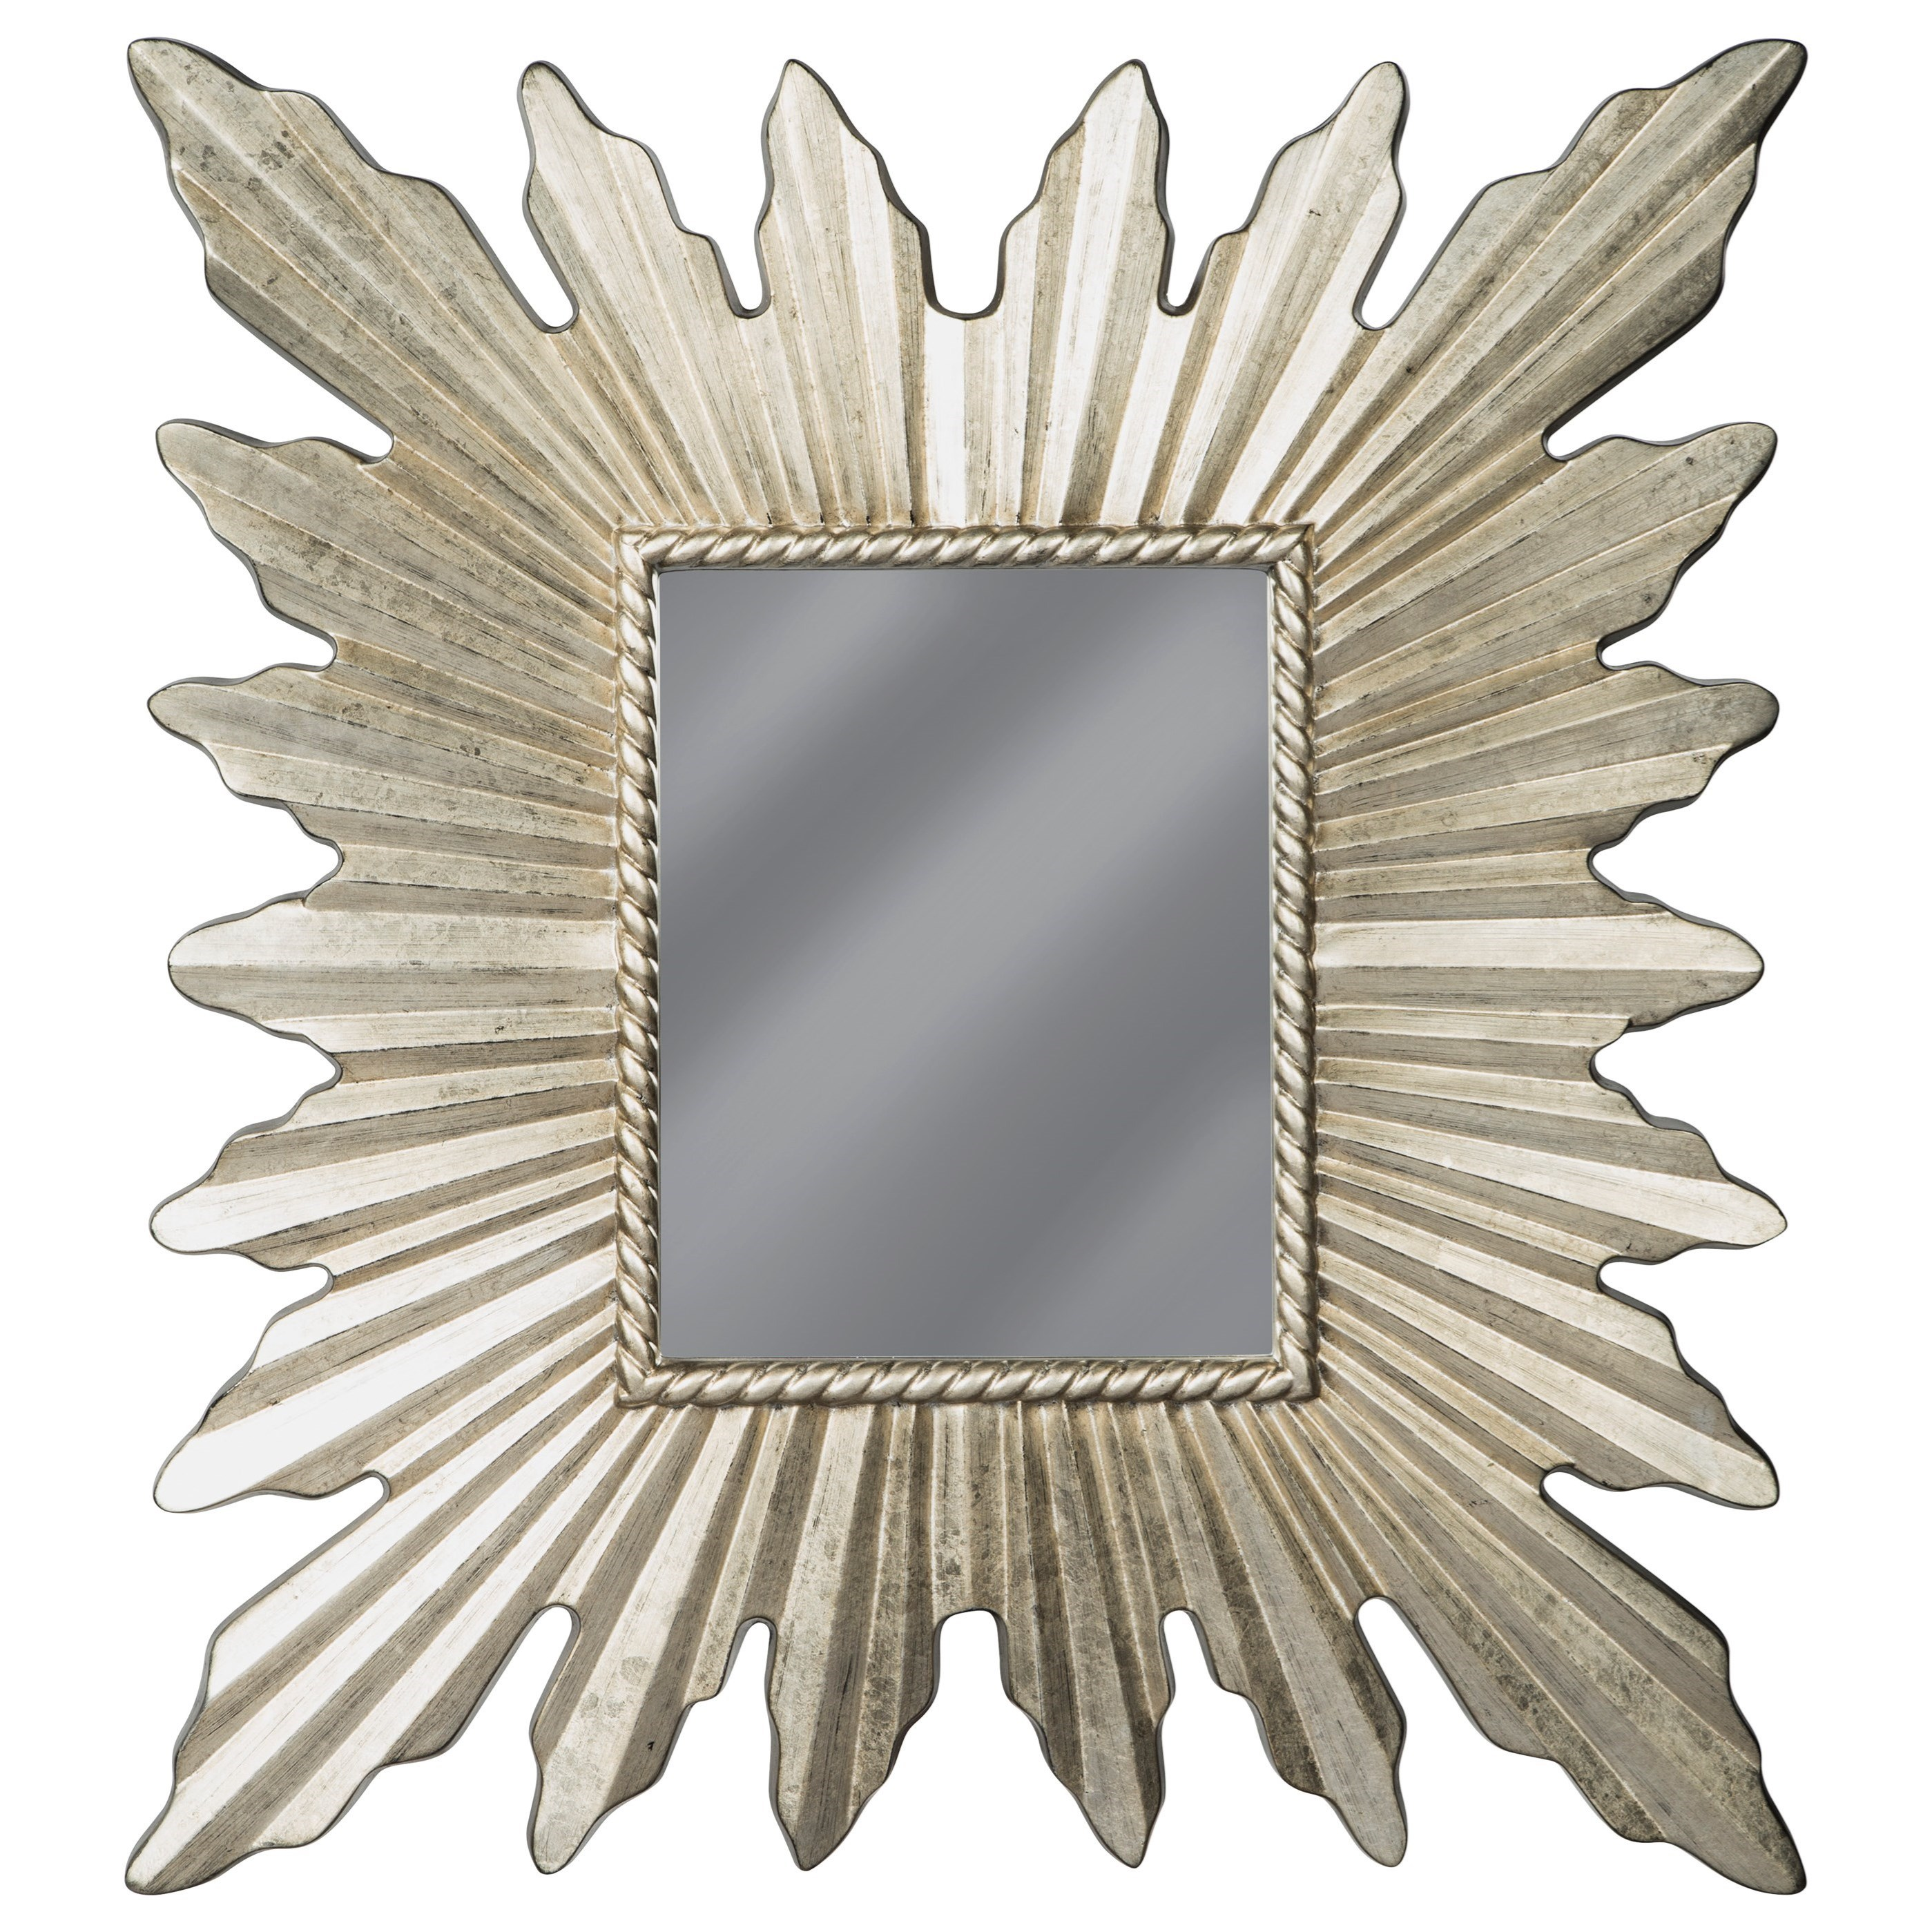 Signature Design by Ashley Accent Mirrors Antonia Antique Silver Finish Accent Mirror - Item Number: A8010133